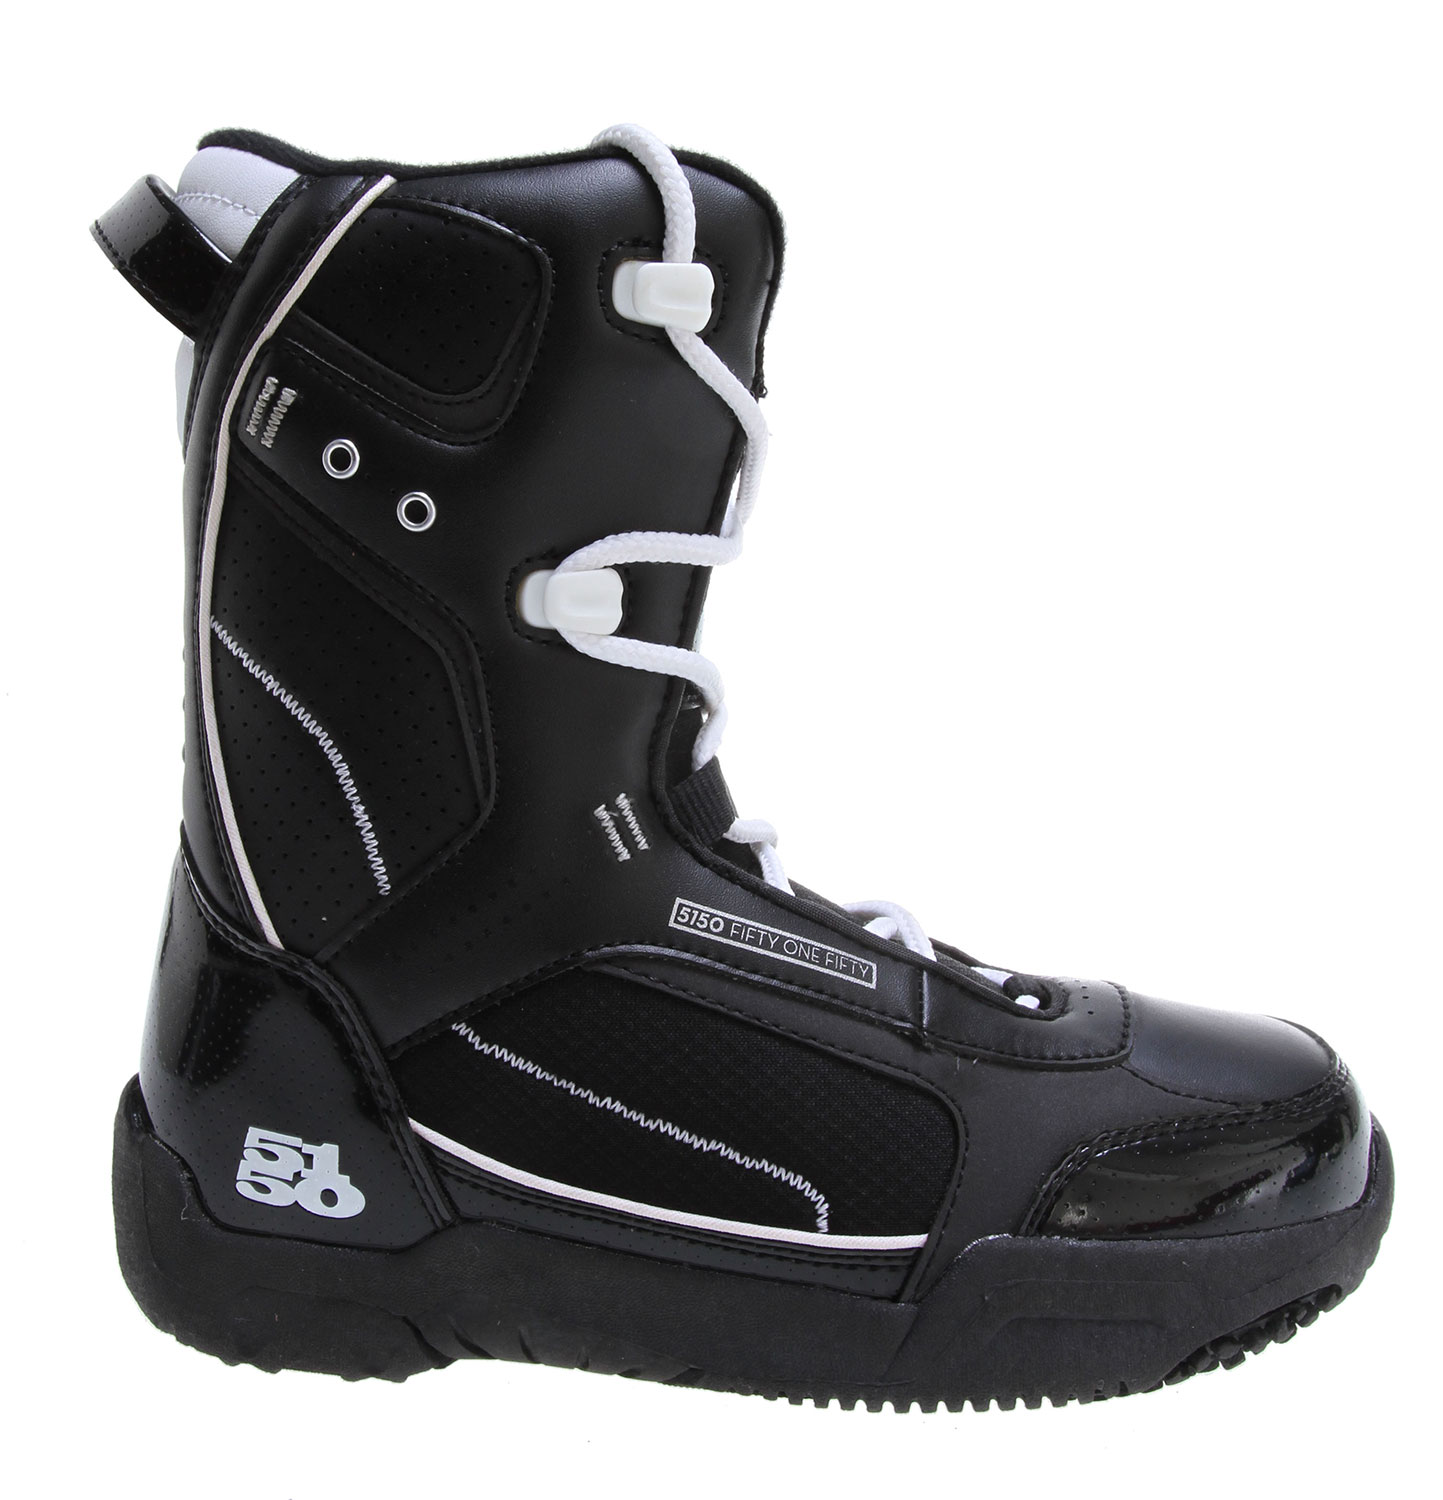 Snowboard Offering smaller feet a fit like no other, the Brigade is a high performance boot made specifically for the young guns. Waterproof shell construction provides the ergonomic support they need to shred hard, while the integrated liner keeps feet warm and comfy all day. The durable Sidewinder outsole design features ultimate cushion and traction.Key Features of the 5150 Brigade Snowboard Boots : Sidewinder Outsole with durable Rubber for a grip that won't slip Integrated Liner with Removable Insole provides warmth and cushion Durable Waterproof Shell Construction gives ergonomic support Webbing Lace Loops with Speed Hooks for easy lacing Soft-Flex Upper with Full Support Ankle Pocket and Heel Lock-Down Pad - $70.95